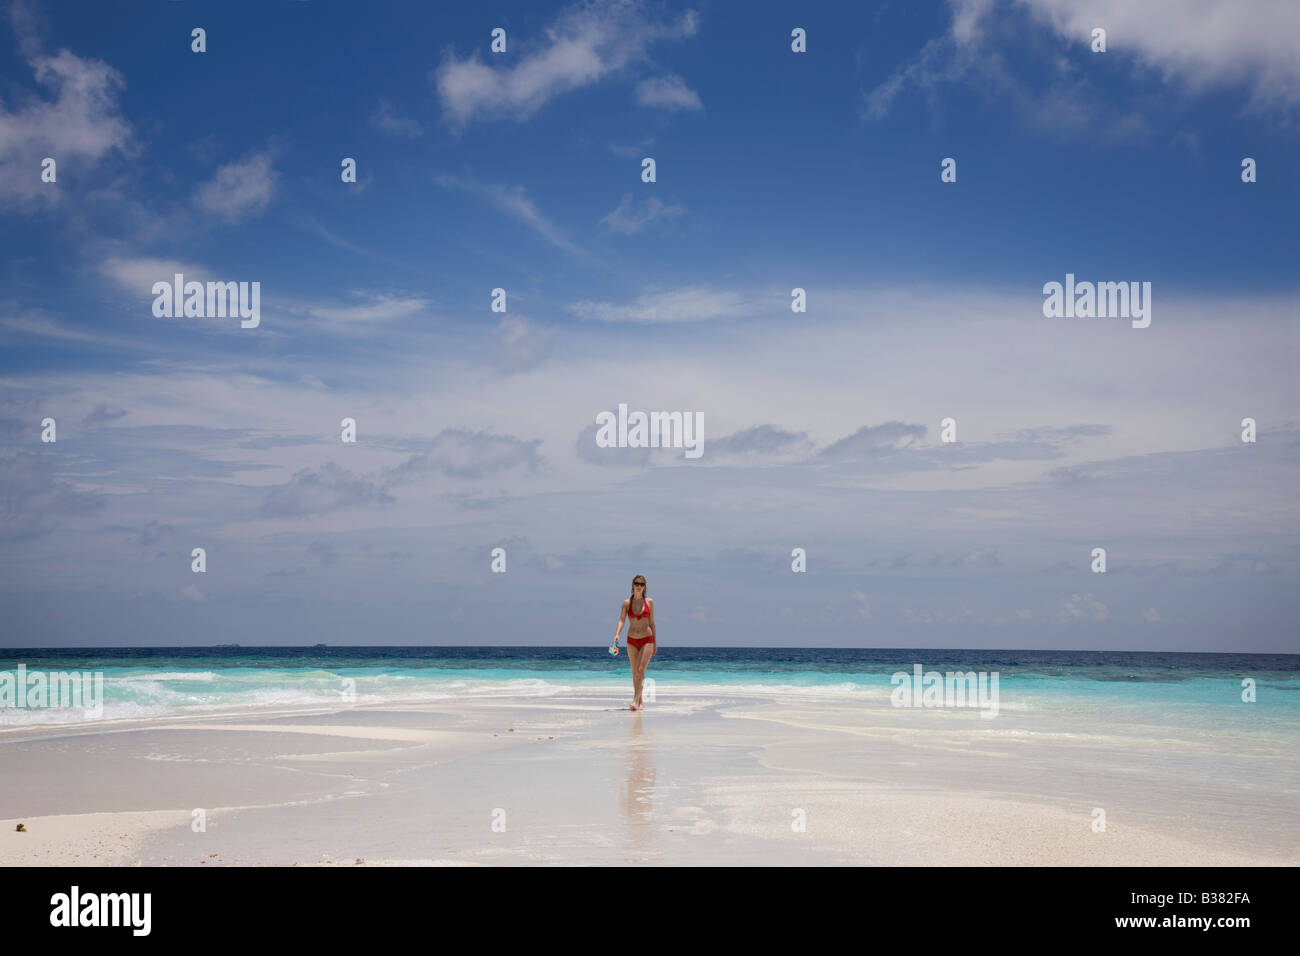 Young woman walking along deserted white sand beach surrounded by tropical waters in Maldives near India - Stock Image